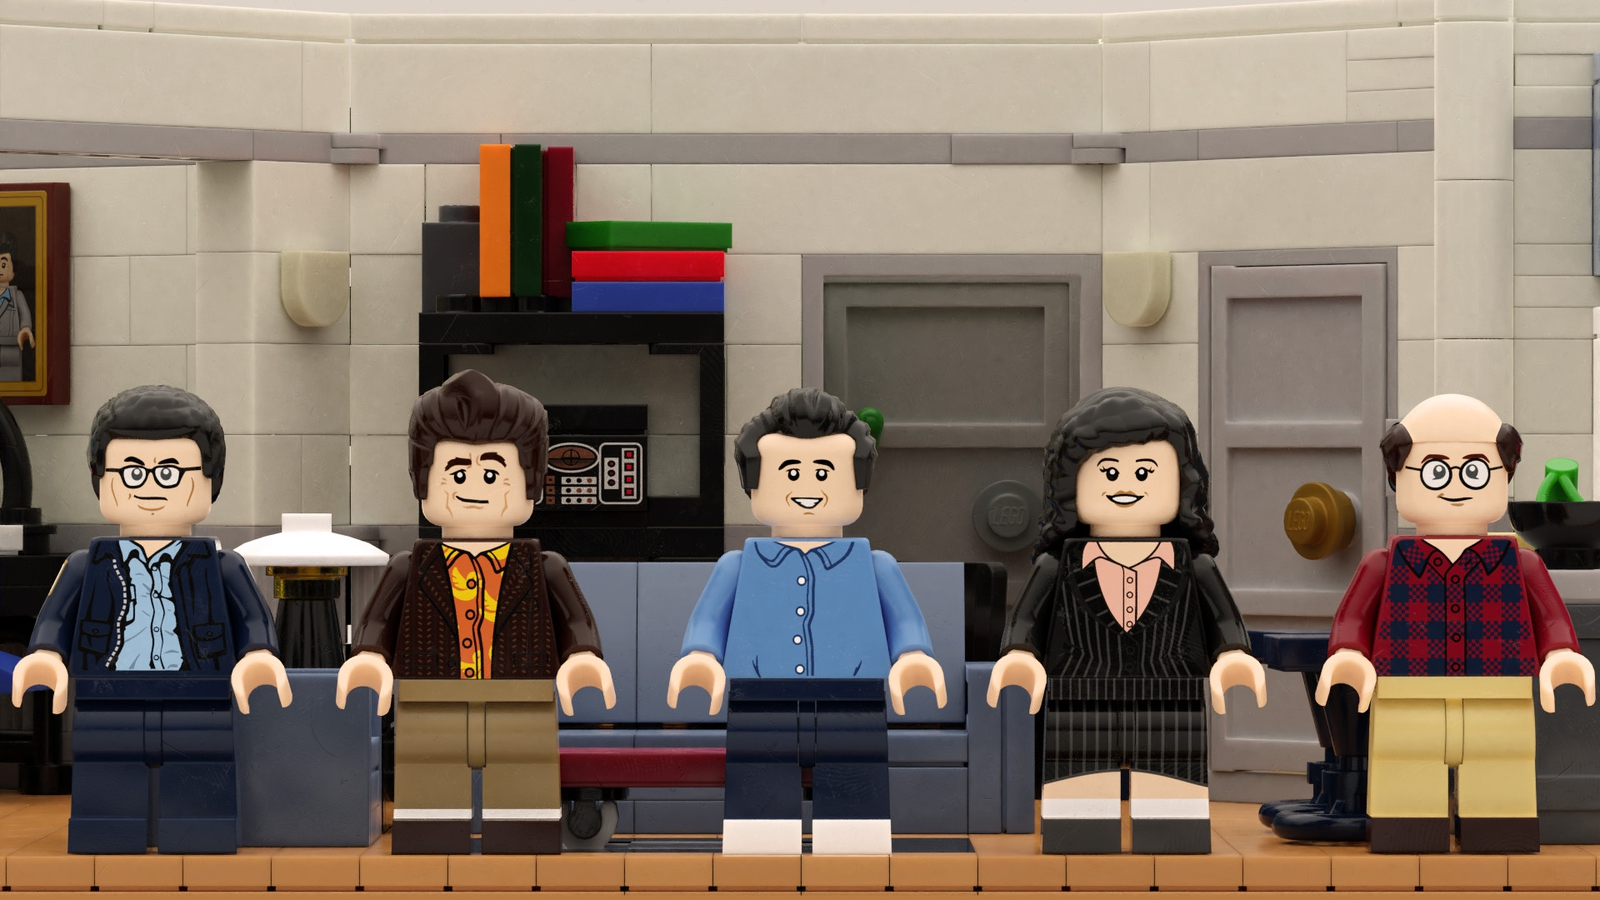 The entire Seinfeld cast as LEGO figurines